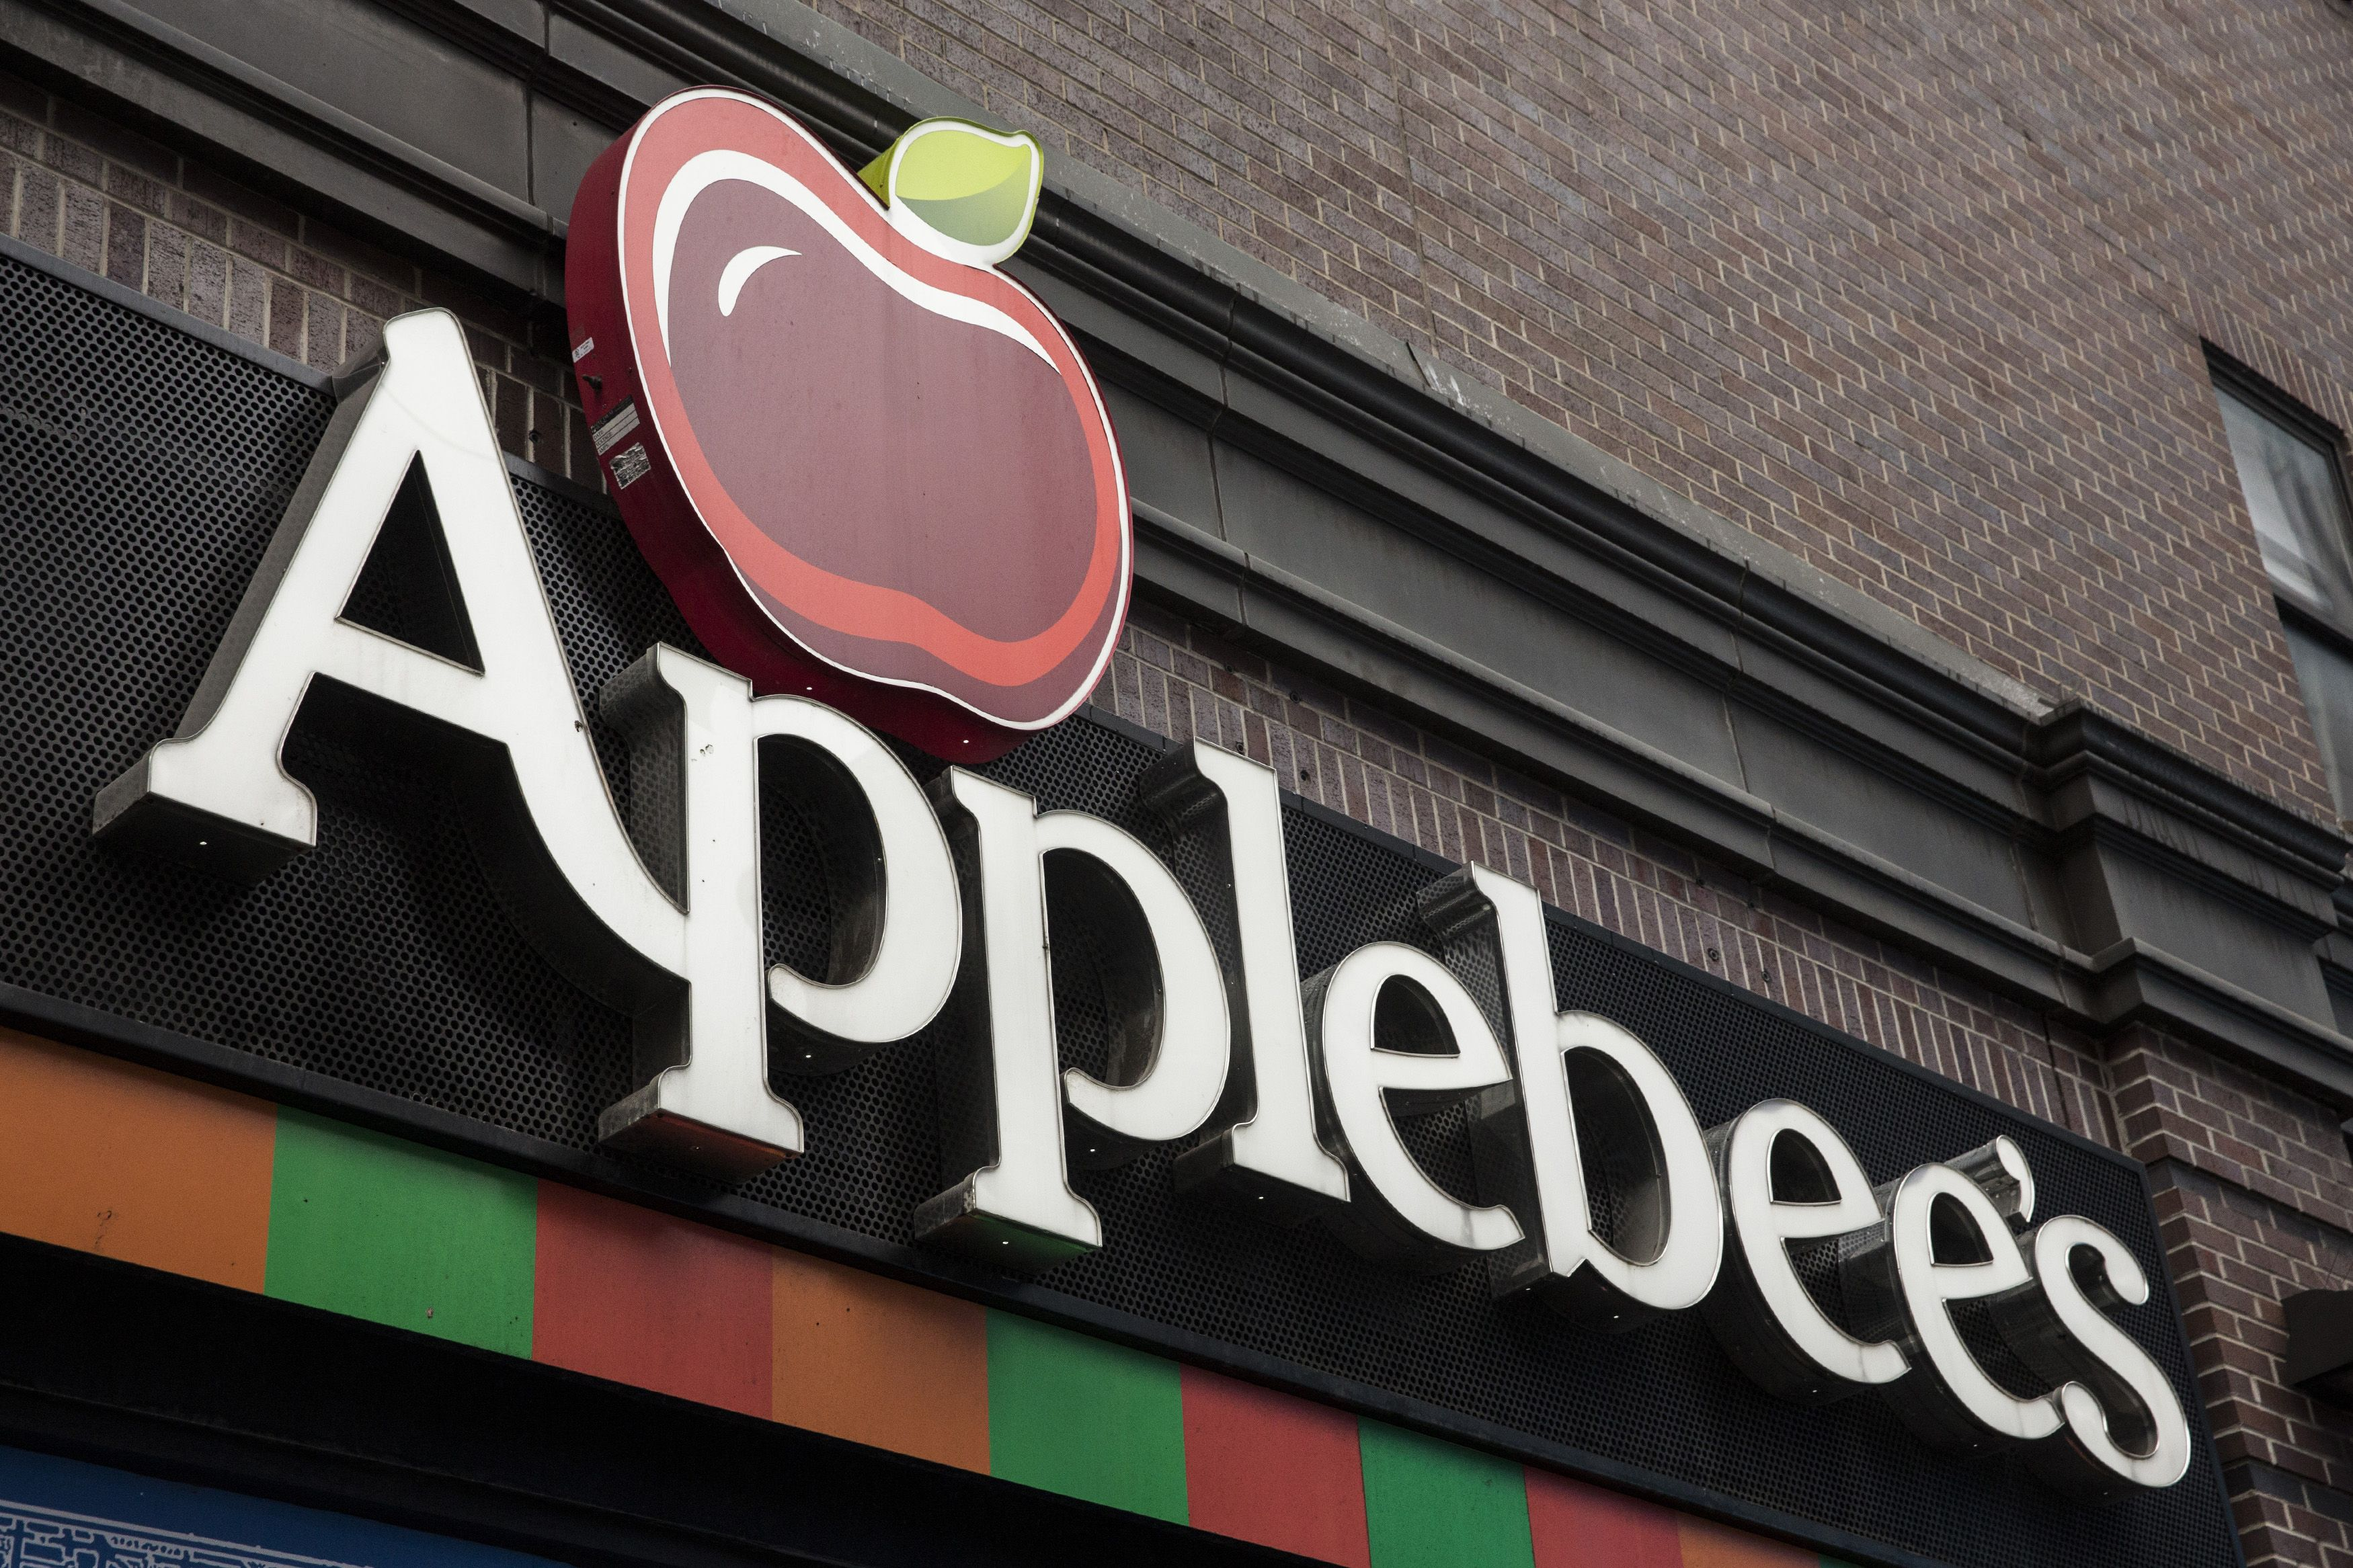 20 Things Applebee's Employees Want You To Know Before You Eat There